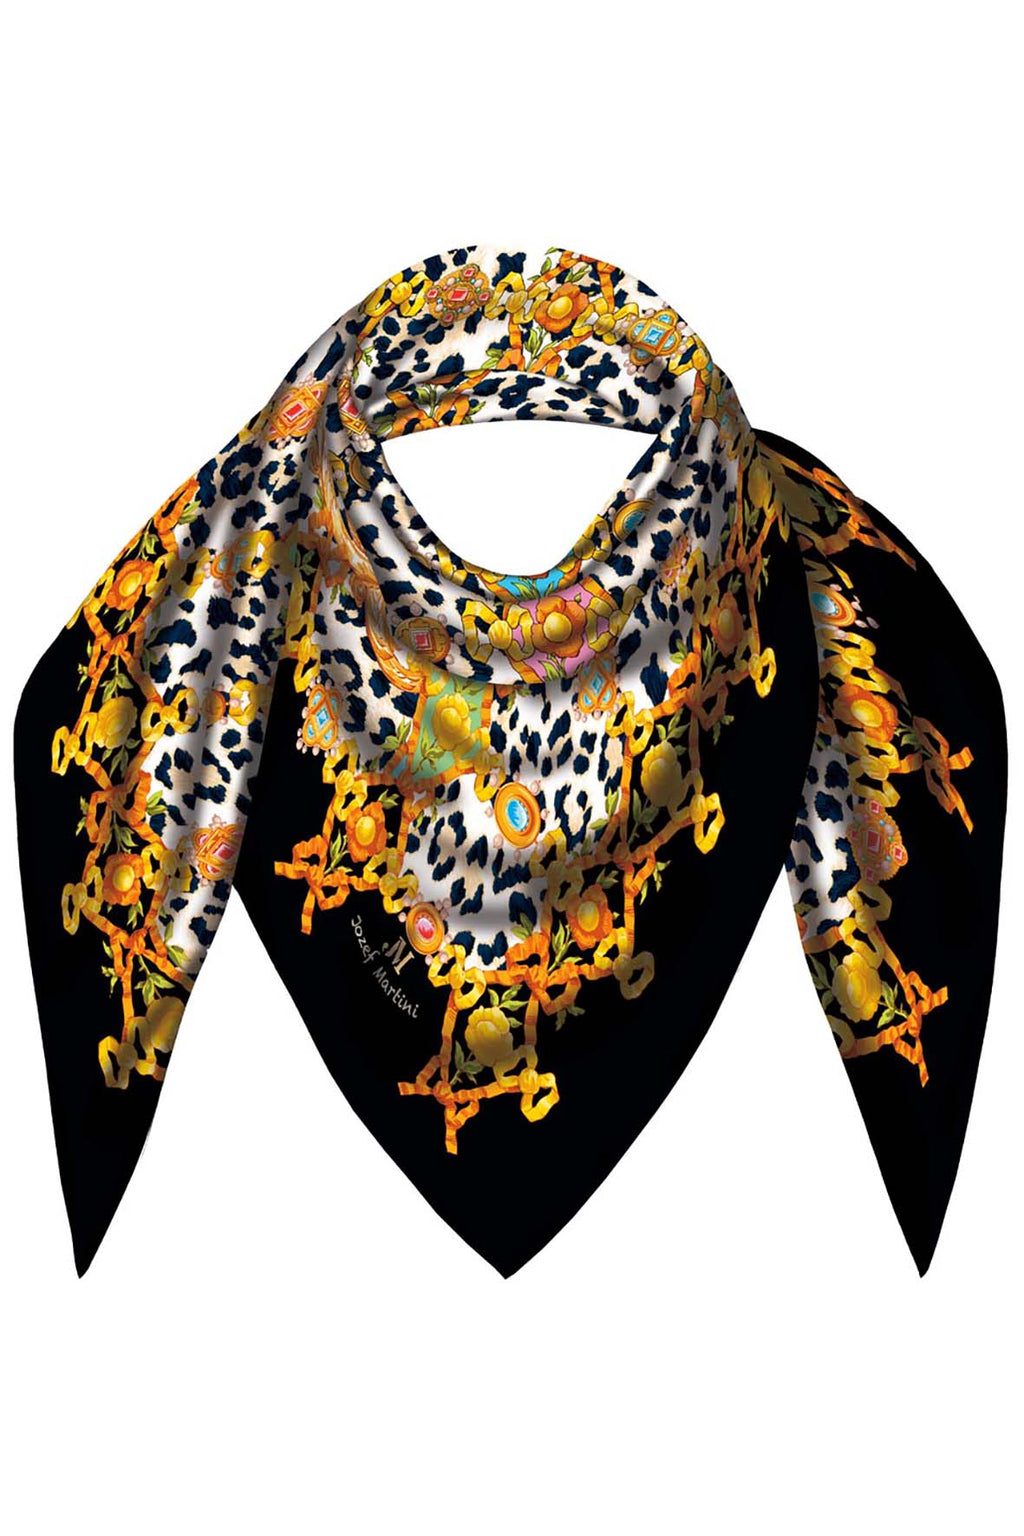 FOULARD 90 JEWELRY RIBBONS ANIMALIERE JM PRINT SILK